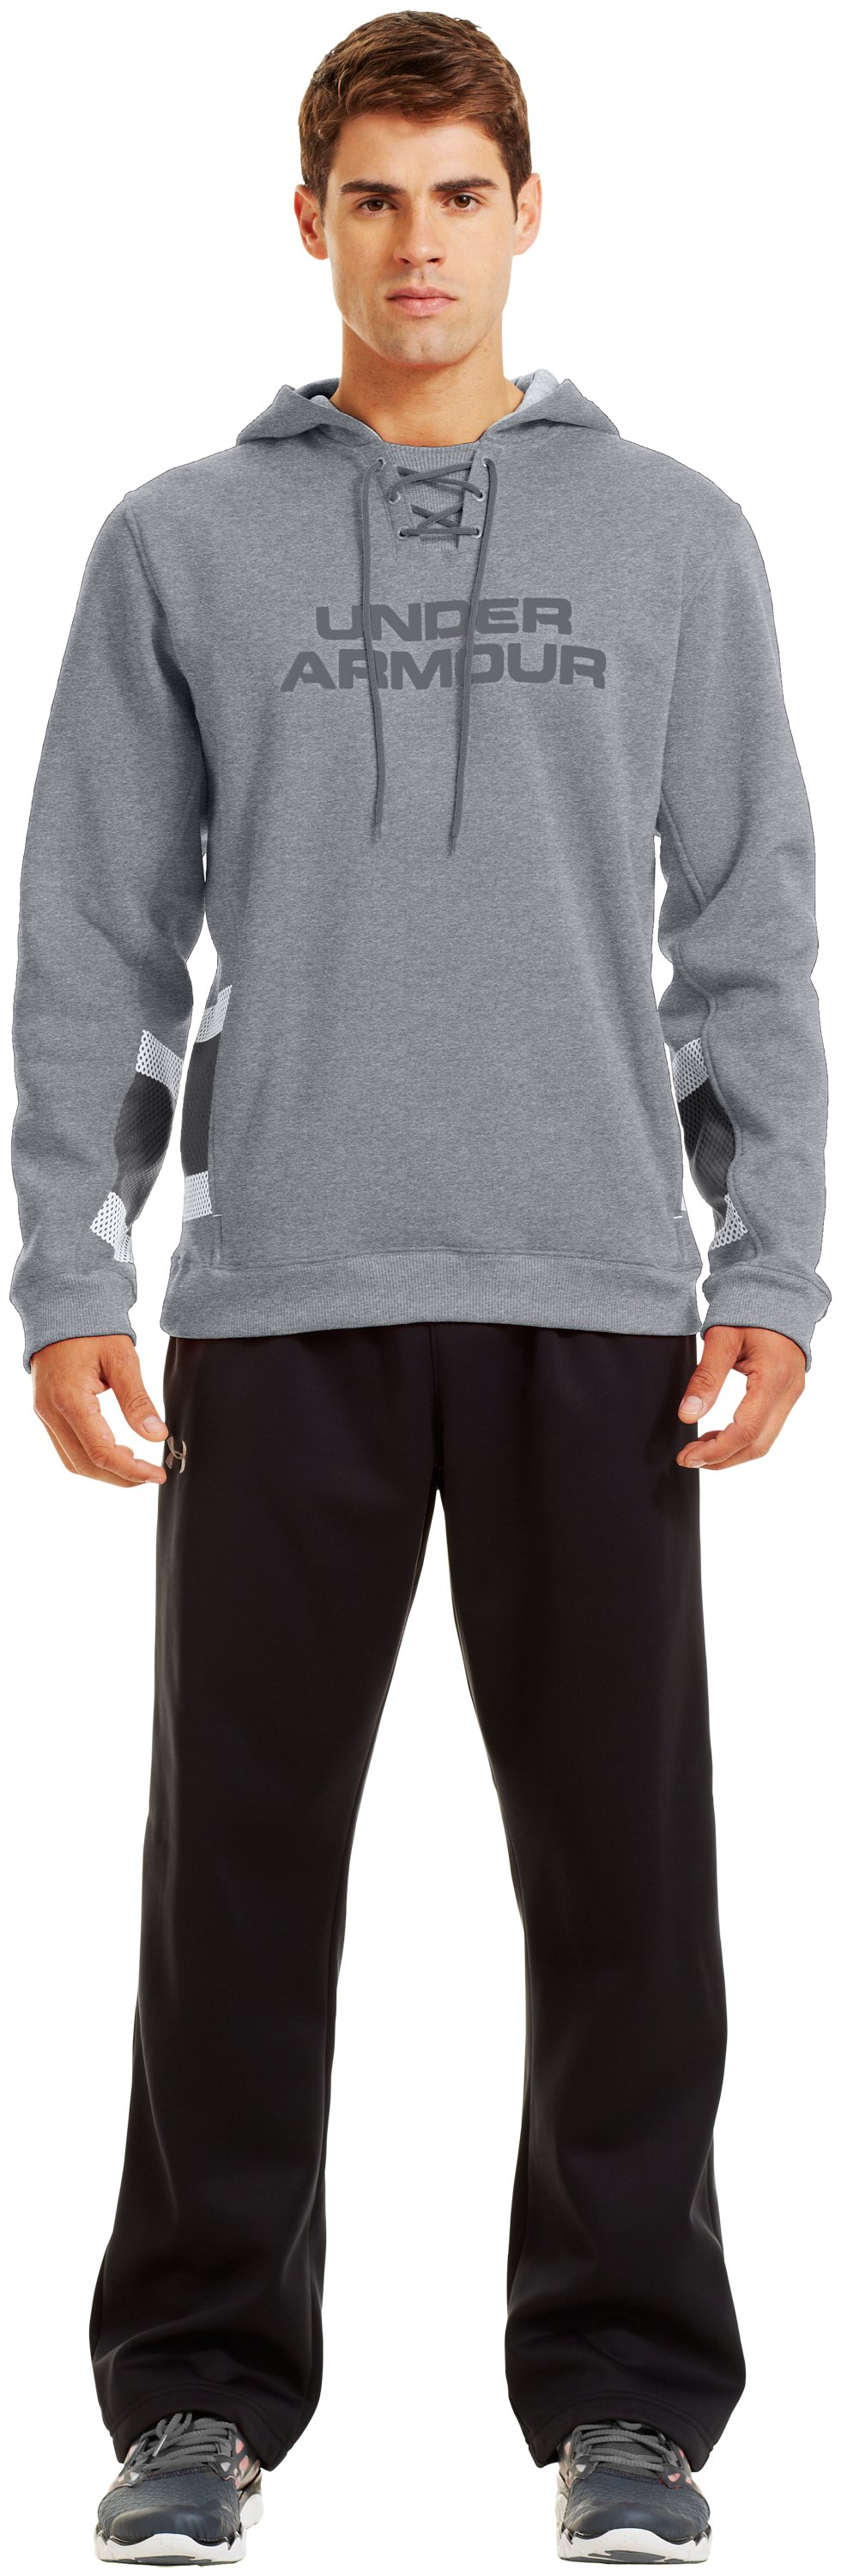 Men's Charged Cotton® Storm Chuck-A-Puck Hoodie, True Gray Heather